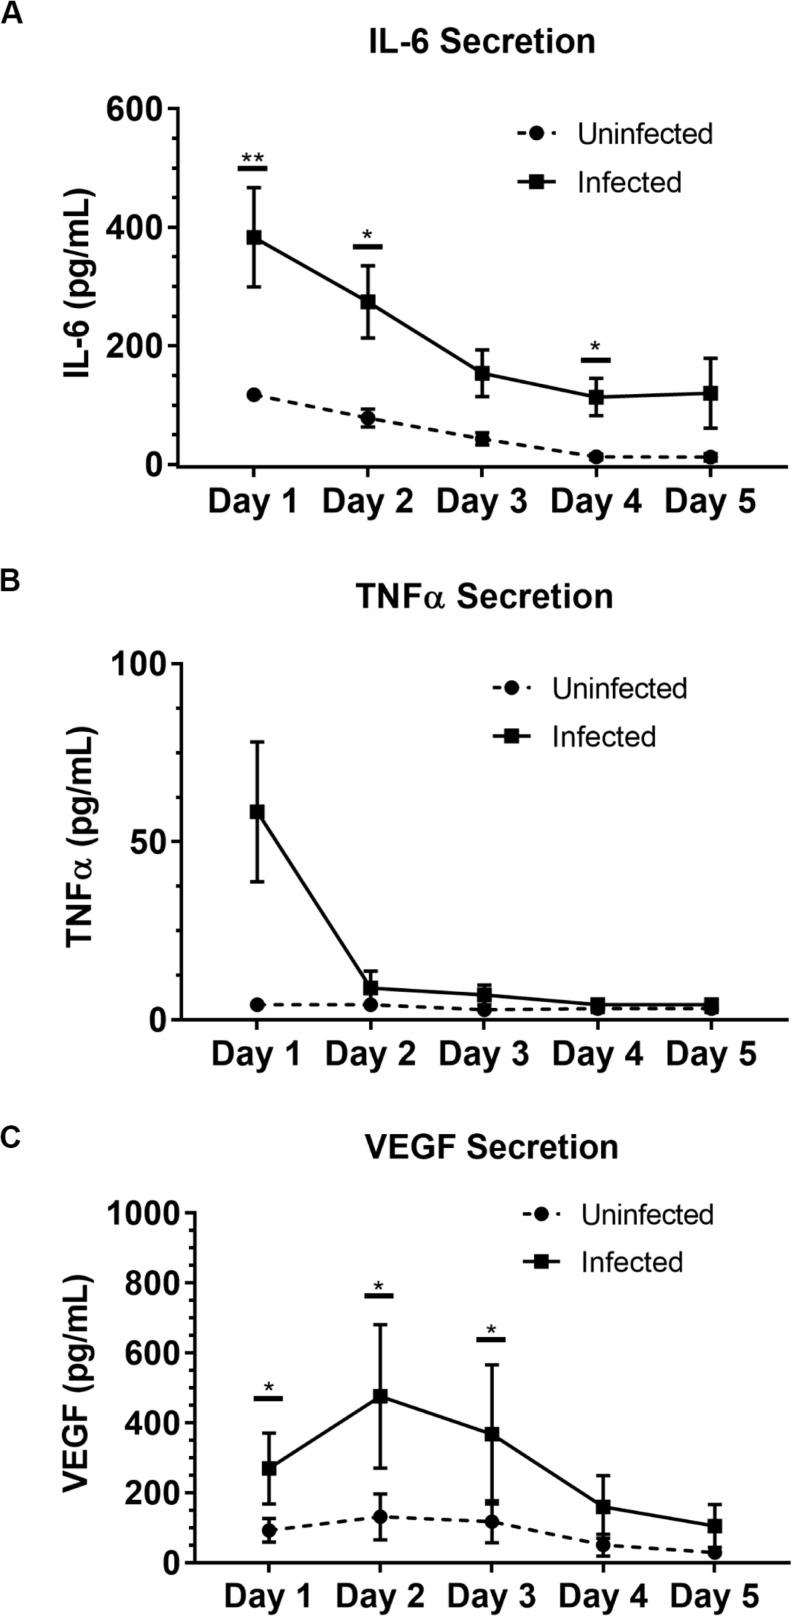 Soluble factor analysis of granuloma layer supernatants illustrates proinflammatory profile of infection model. Infection with BCG causes significant increases in secretion of (A) IL-6 and (C) VEGF in the Stacks platform, and shows an increasing trend in (B) TNFα secretion Day 1 p.i. Secretion of IL-6, TNFα, and VEGF decreases over time in infected granuloma layers following infection, corresponding with the formation of aggregates starting around Day 3 p.i. For Day 1–5 p.i., media was replaced daily and supernatant collected from each day was analyzed. Each point represents pooled supernatant samples from 24 technical replicates from n = 4 independent experiments. Error bars: SEM. * P